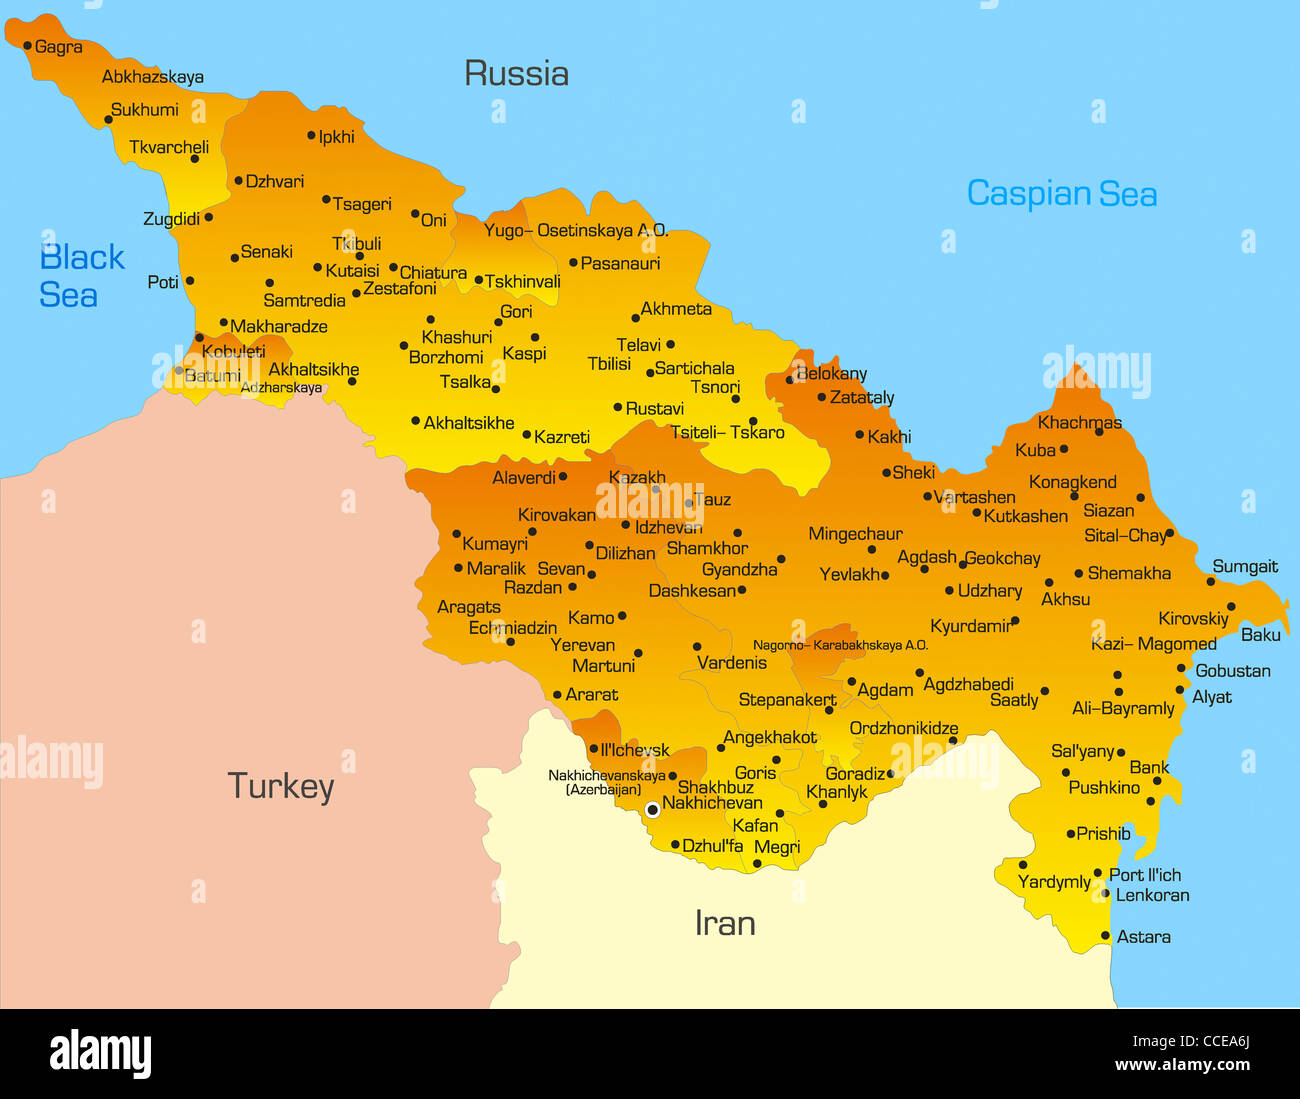 Vector map of Caspian region countries - Stock Image